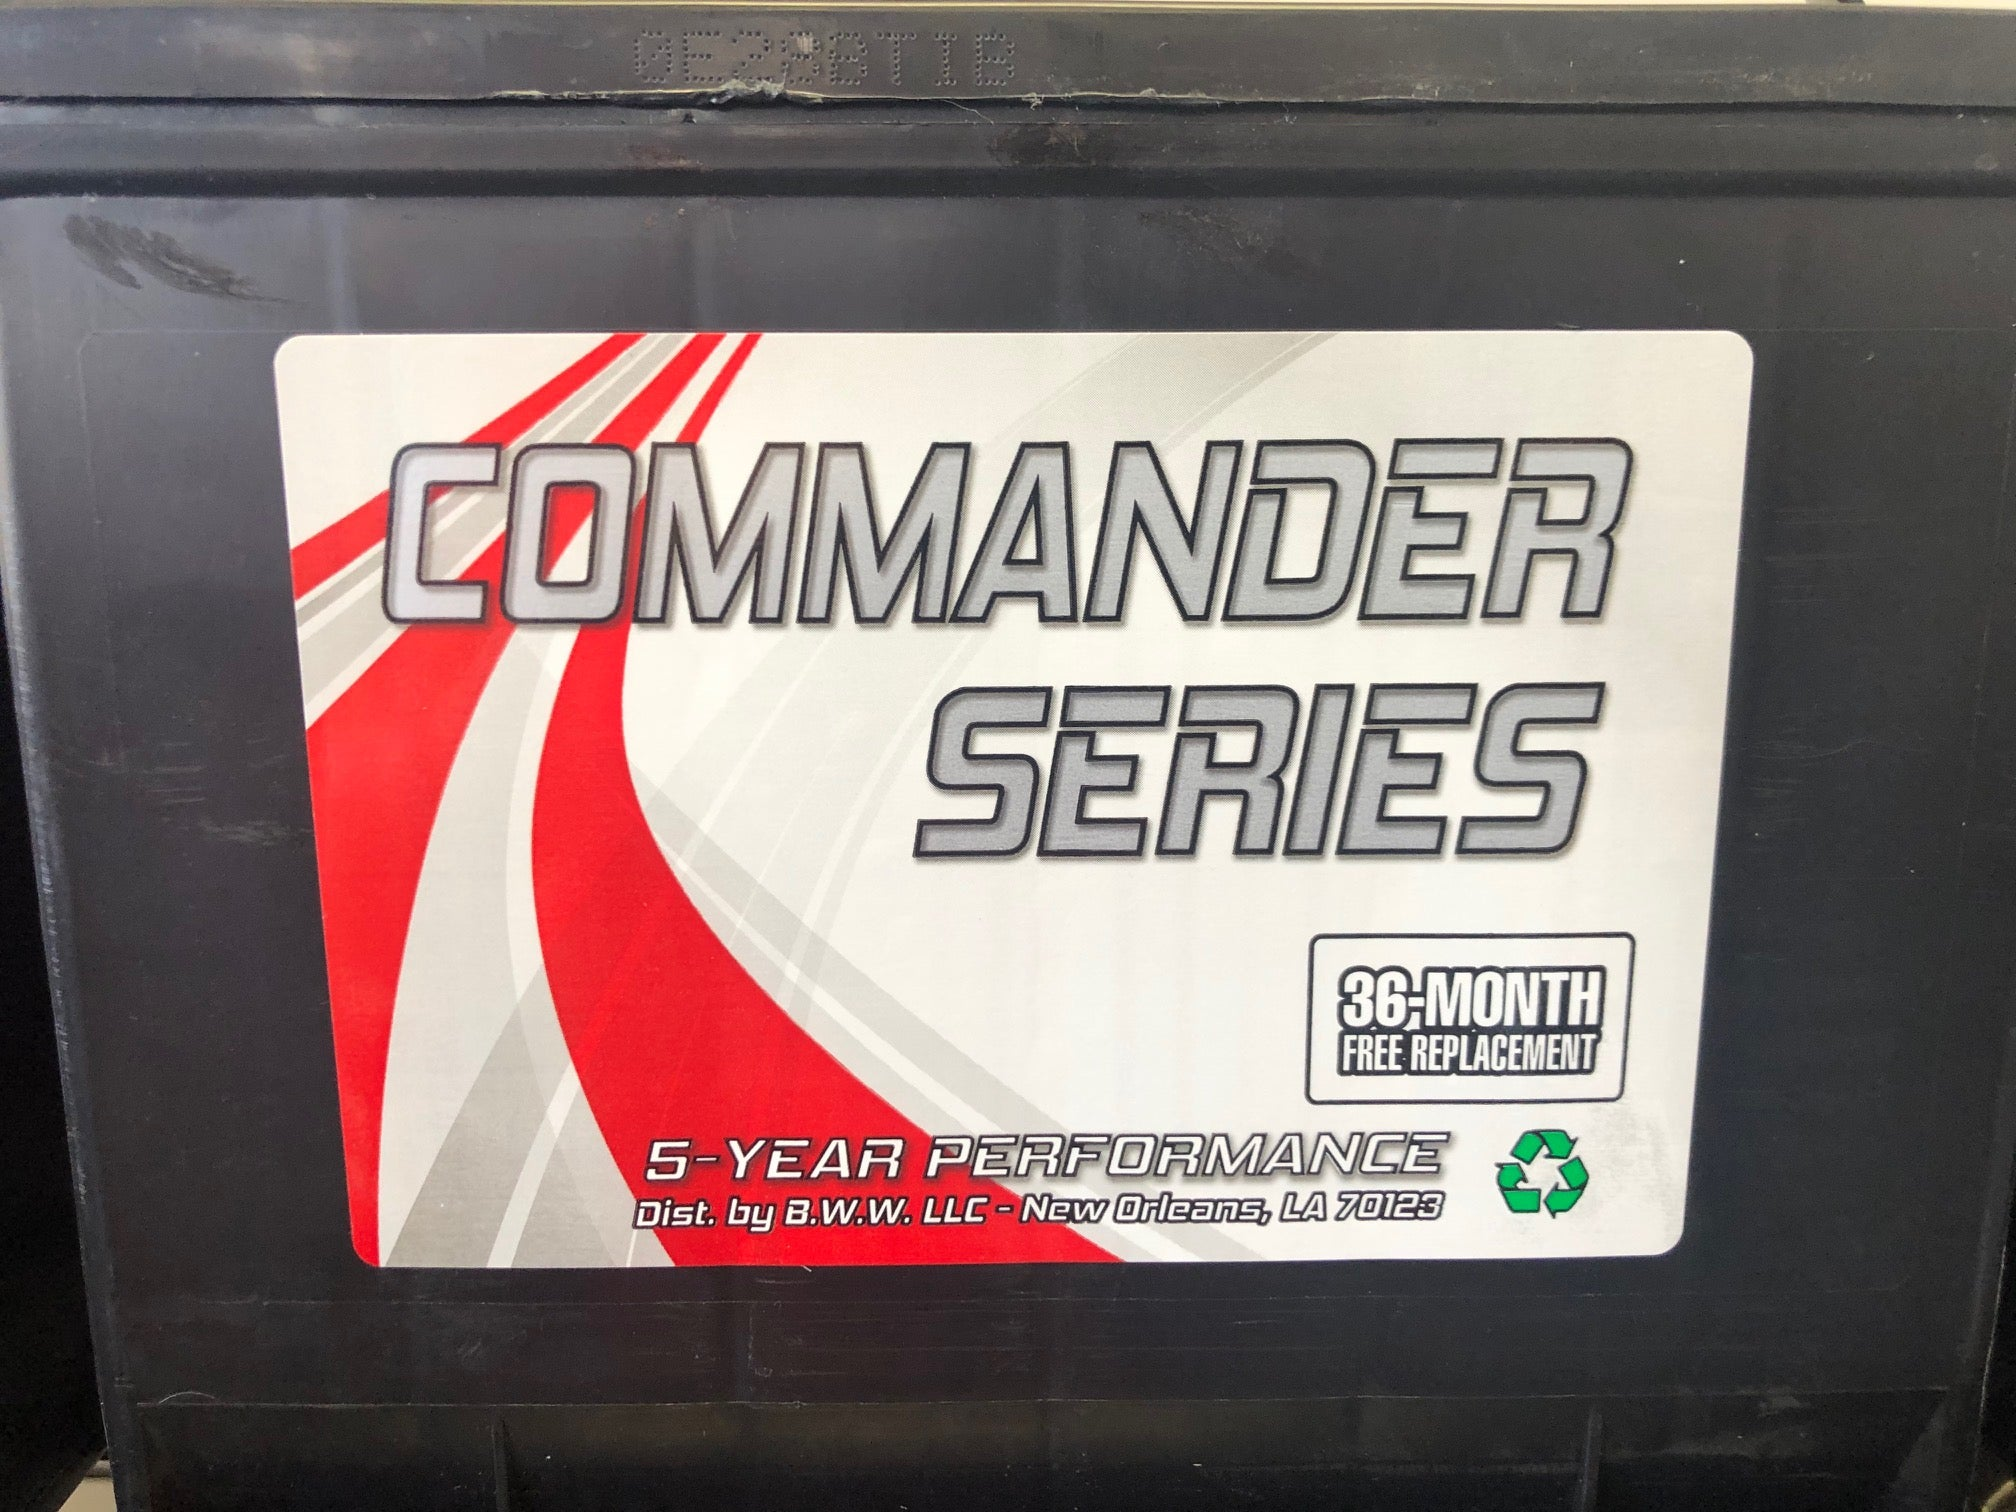 Commander Series Marine Deep Cycle Group Size 24 - 140 Reserve Capacity